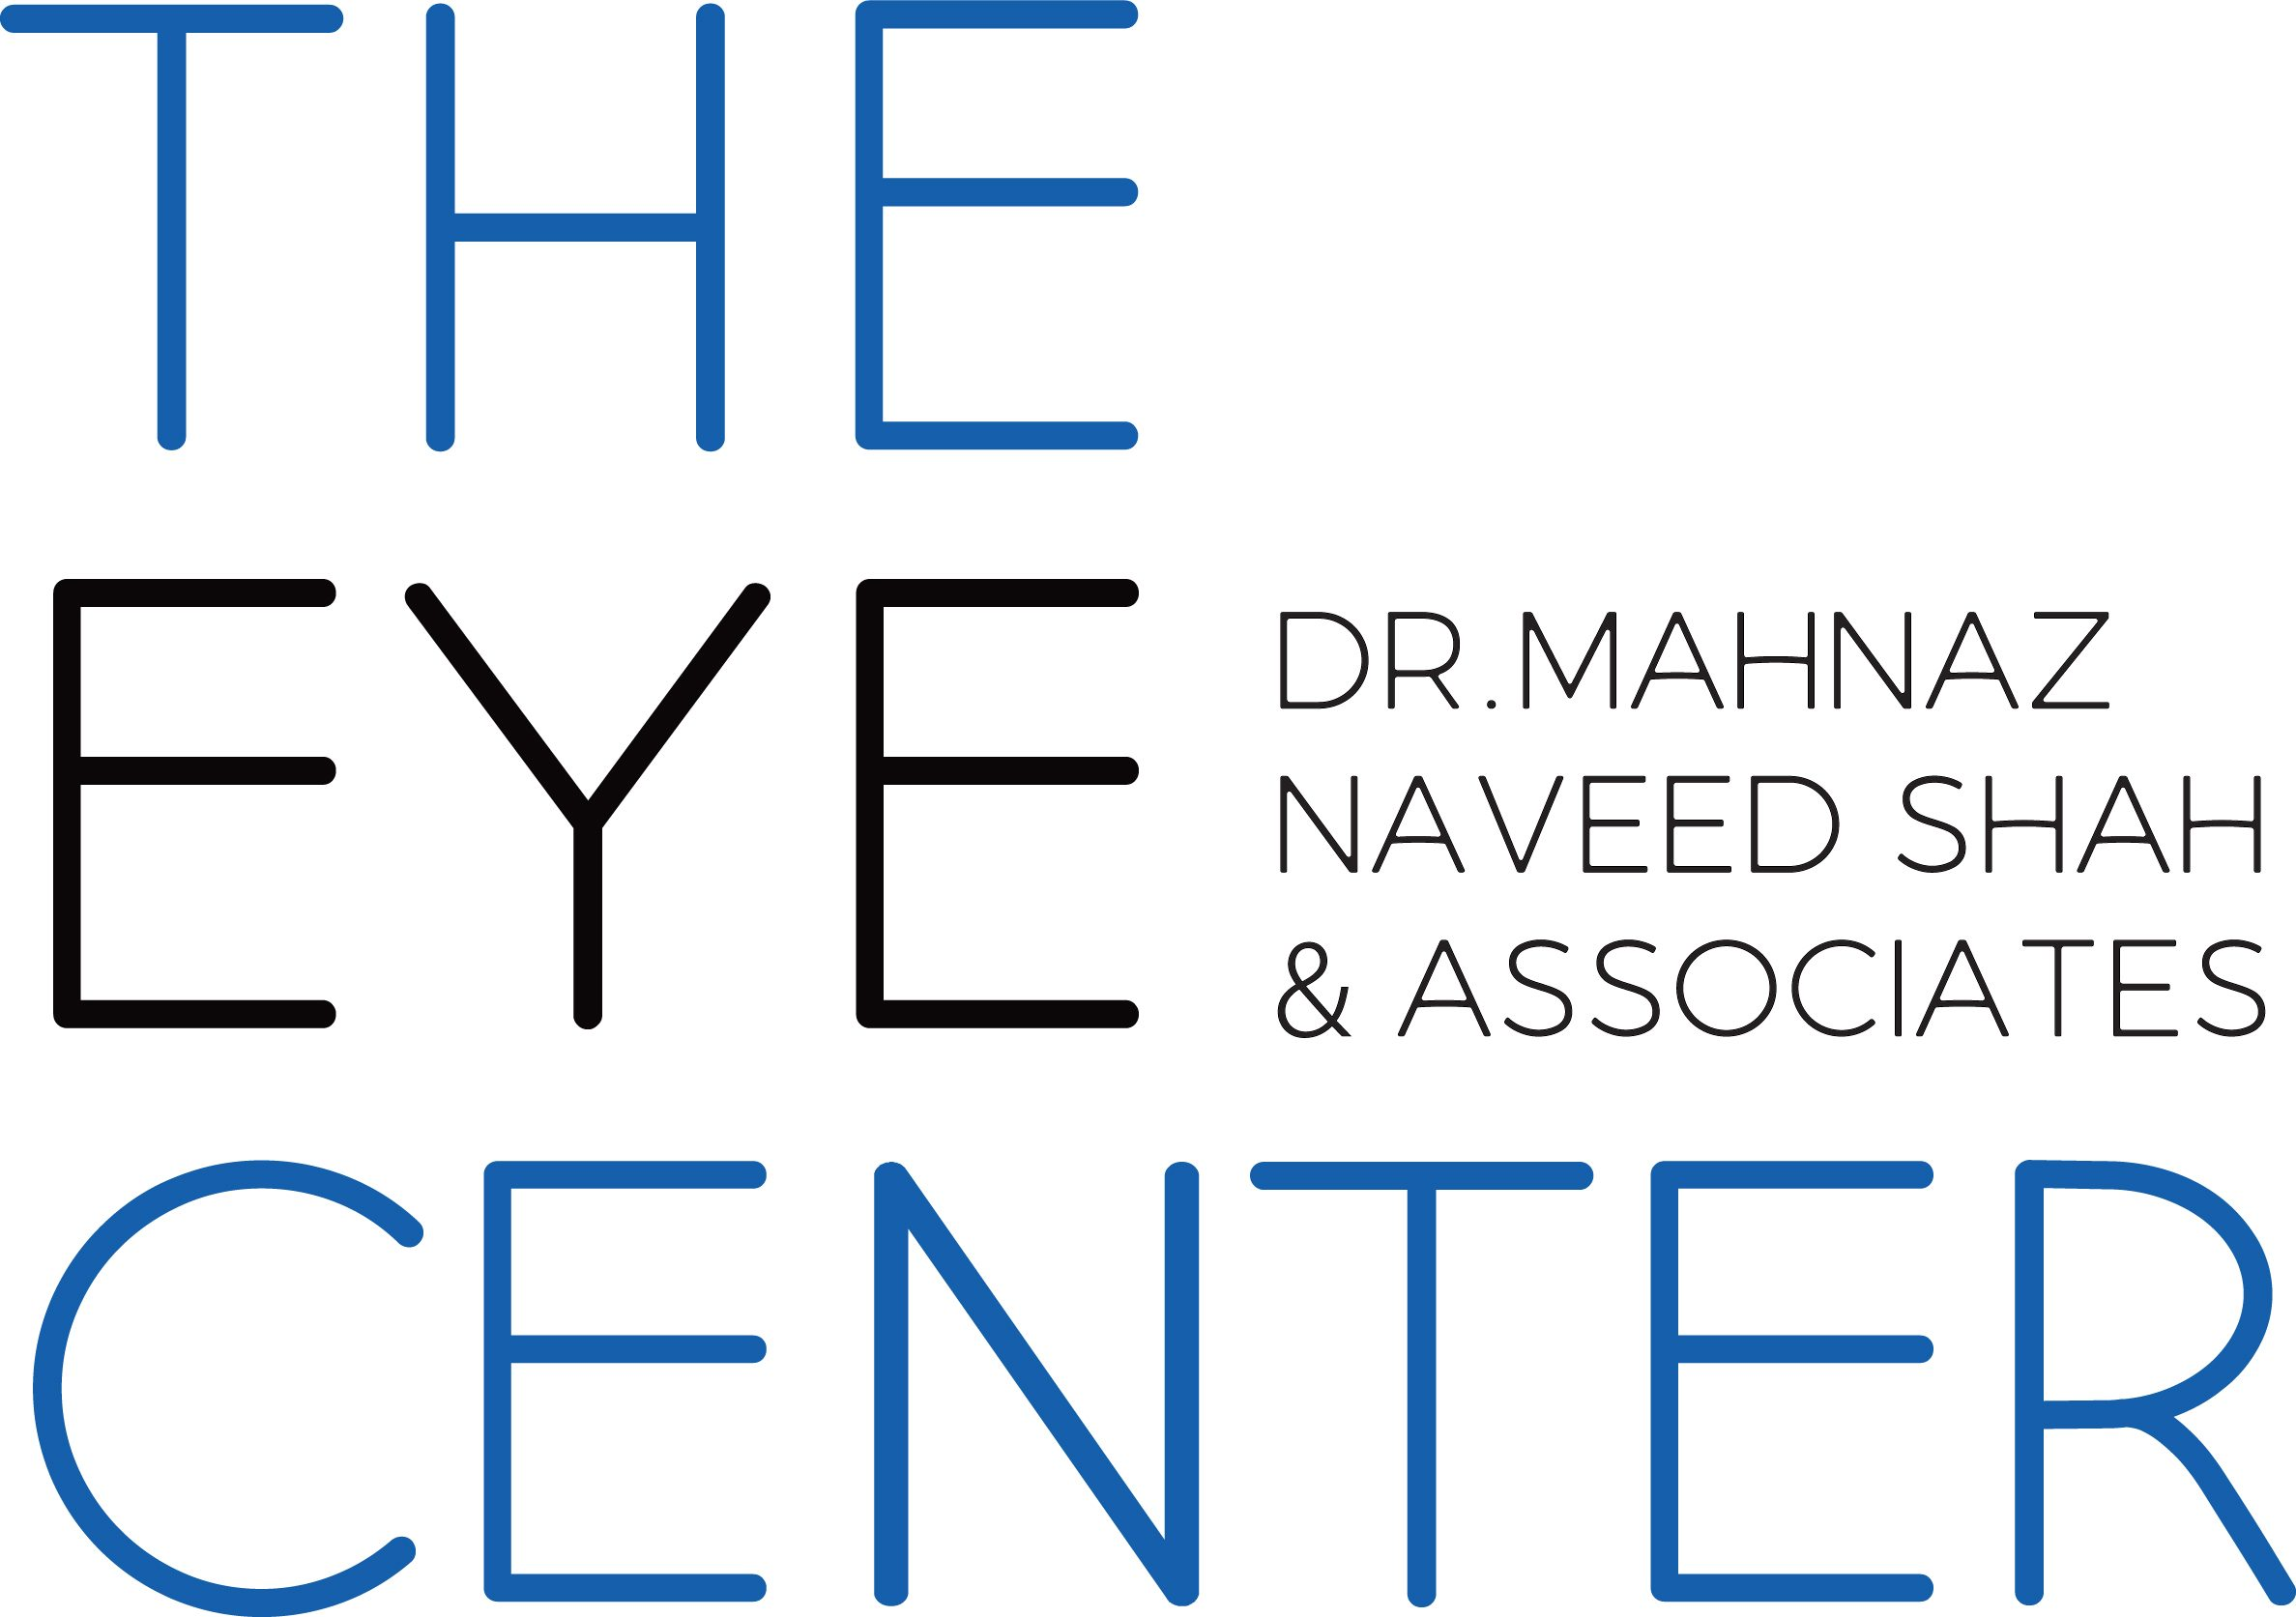 Eye Center Dr. Mahnaz Naveed Shah & Associates